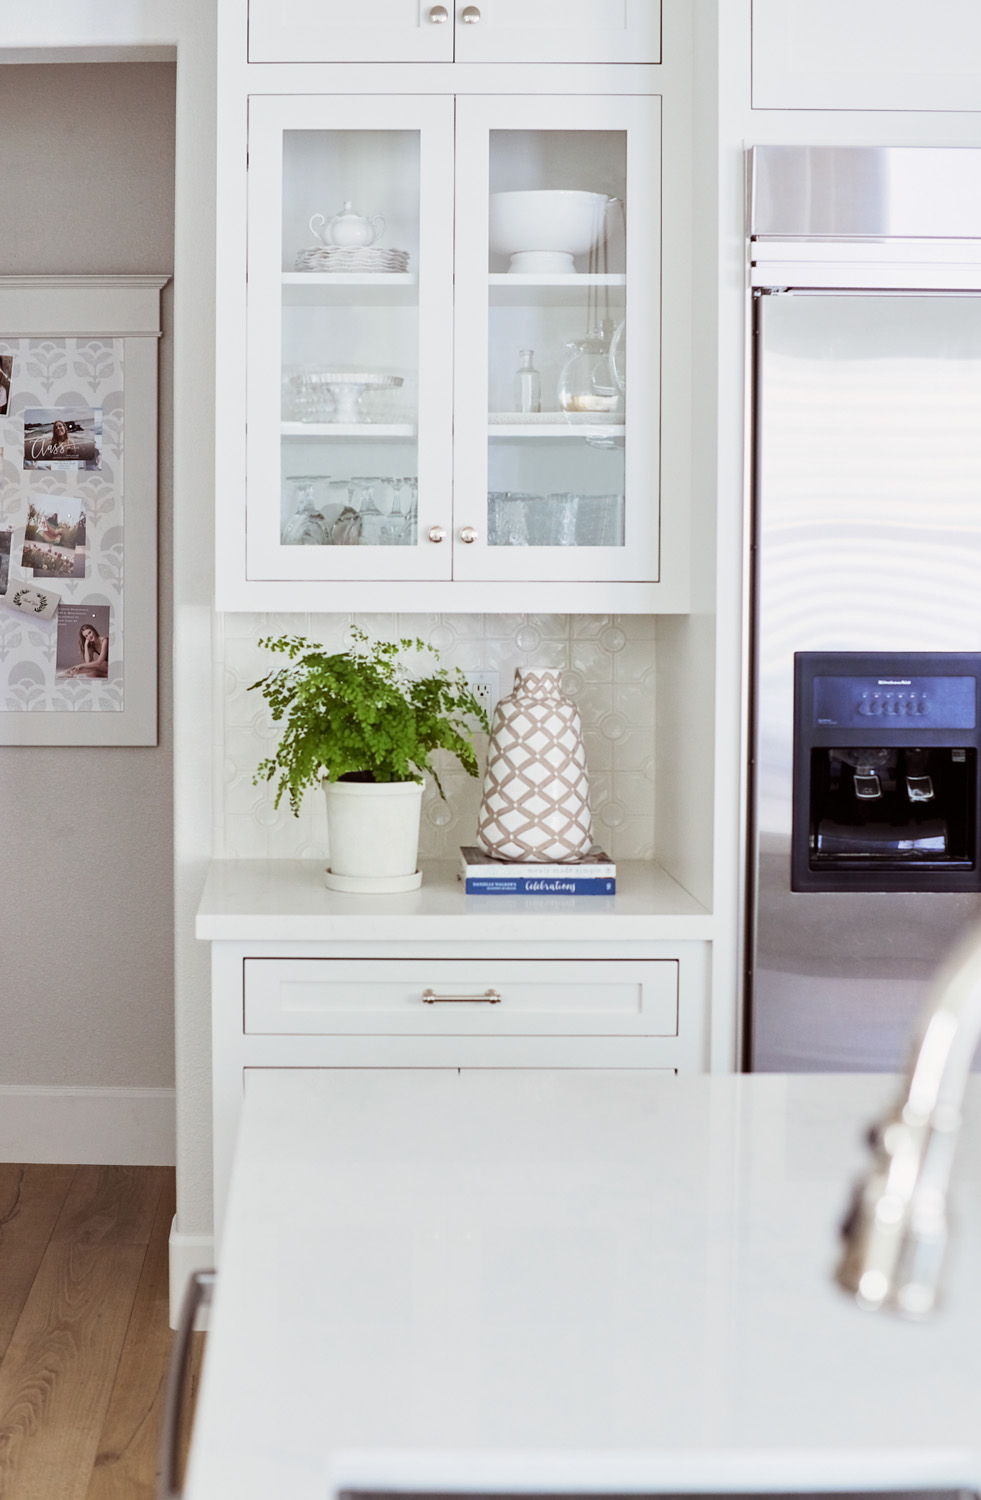 House By The Sea Glass Cabinets Kitchen Close Up.jpg